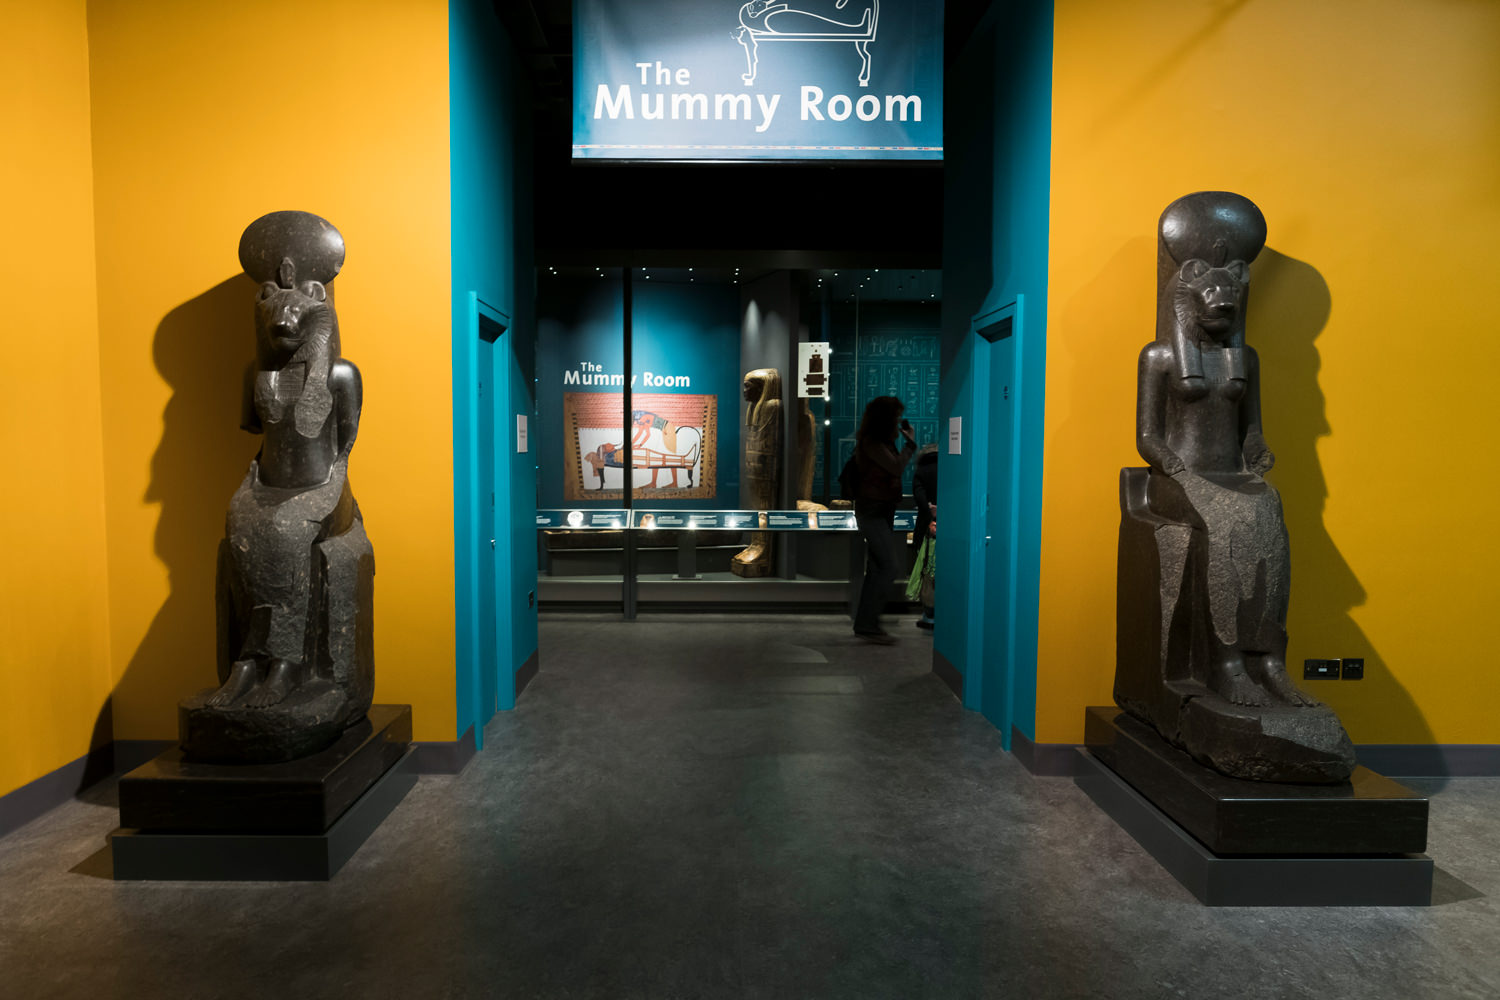 The entrance to the mummy room. The museum's two large, stone statues of the goddess Sekhmet are either side of the doorway.